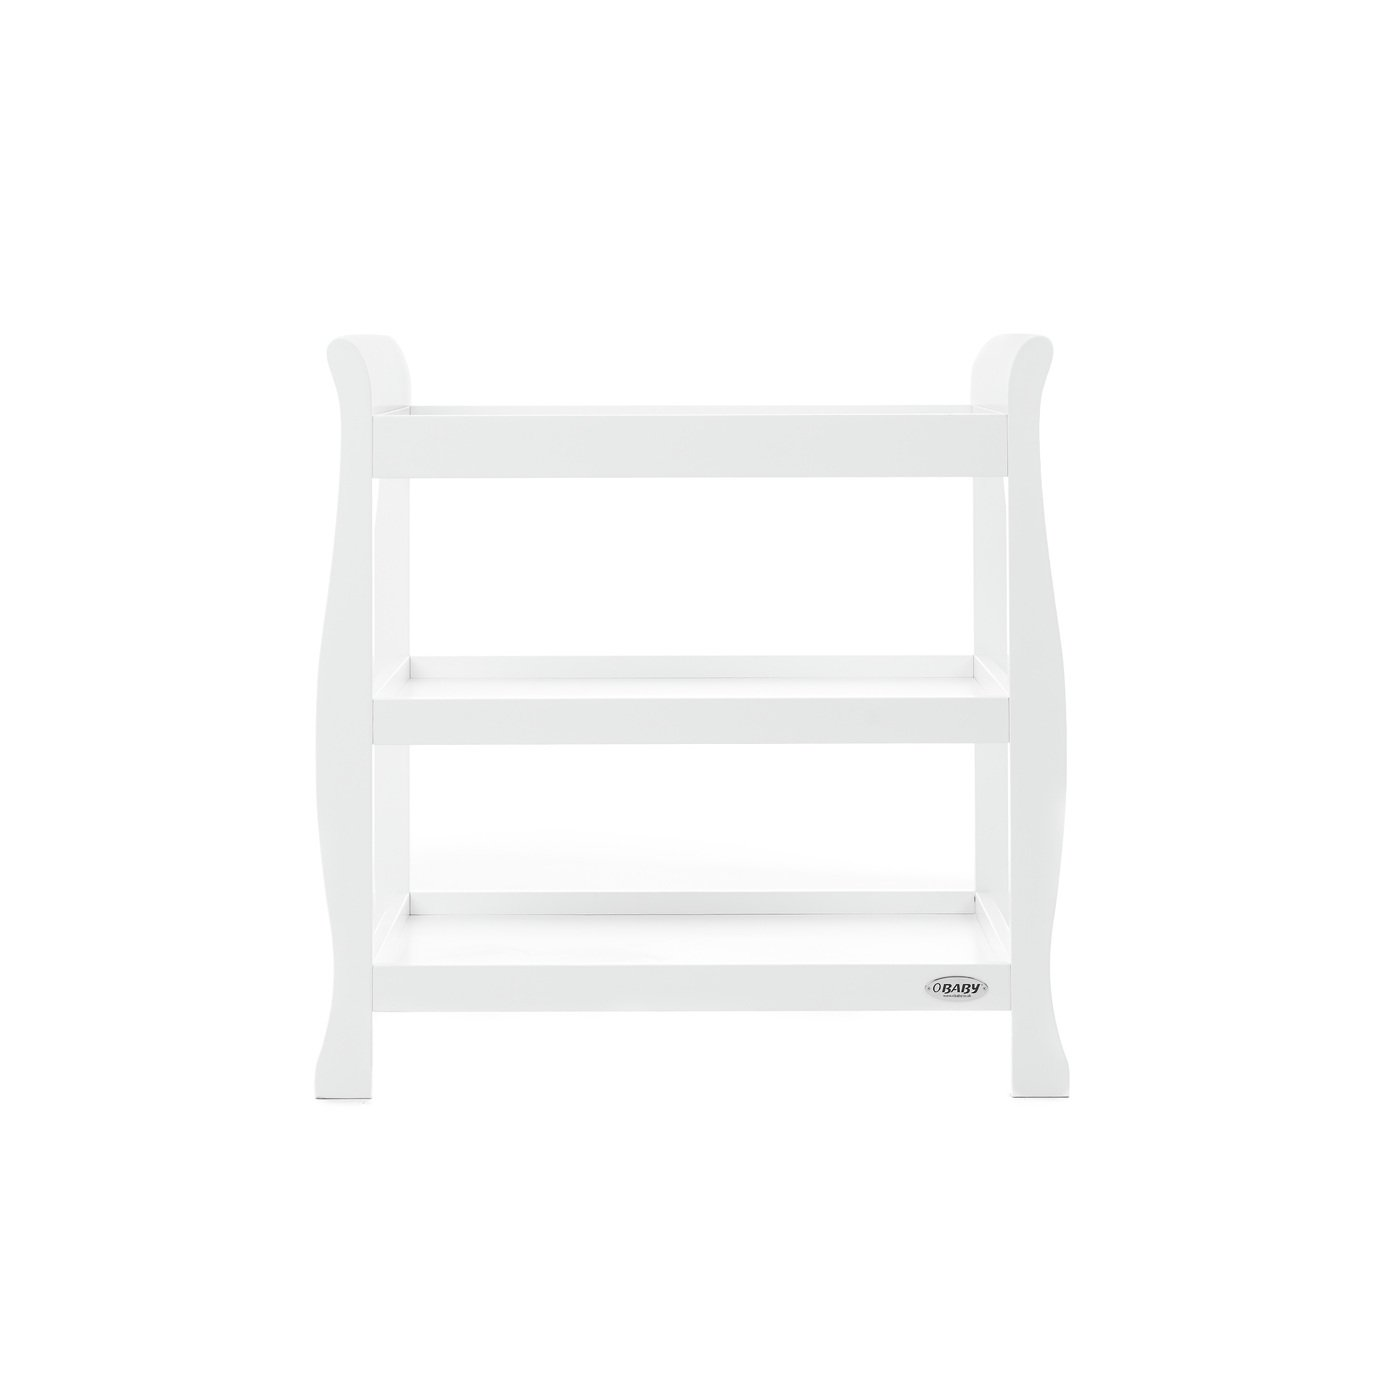 Obaby Stamford Sleigh Open Changing Unit - White